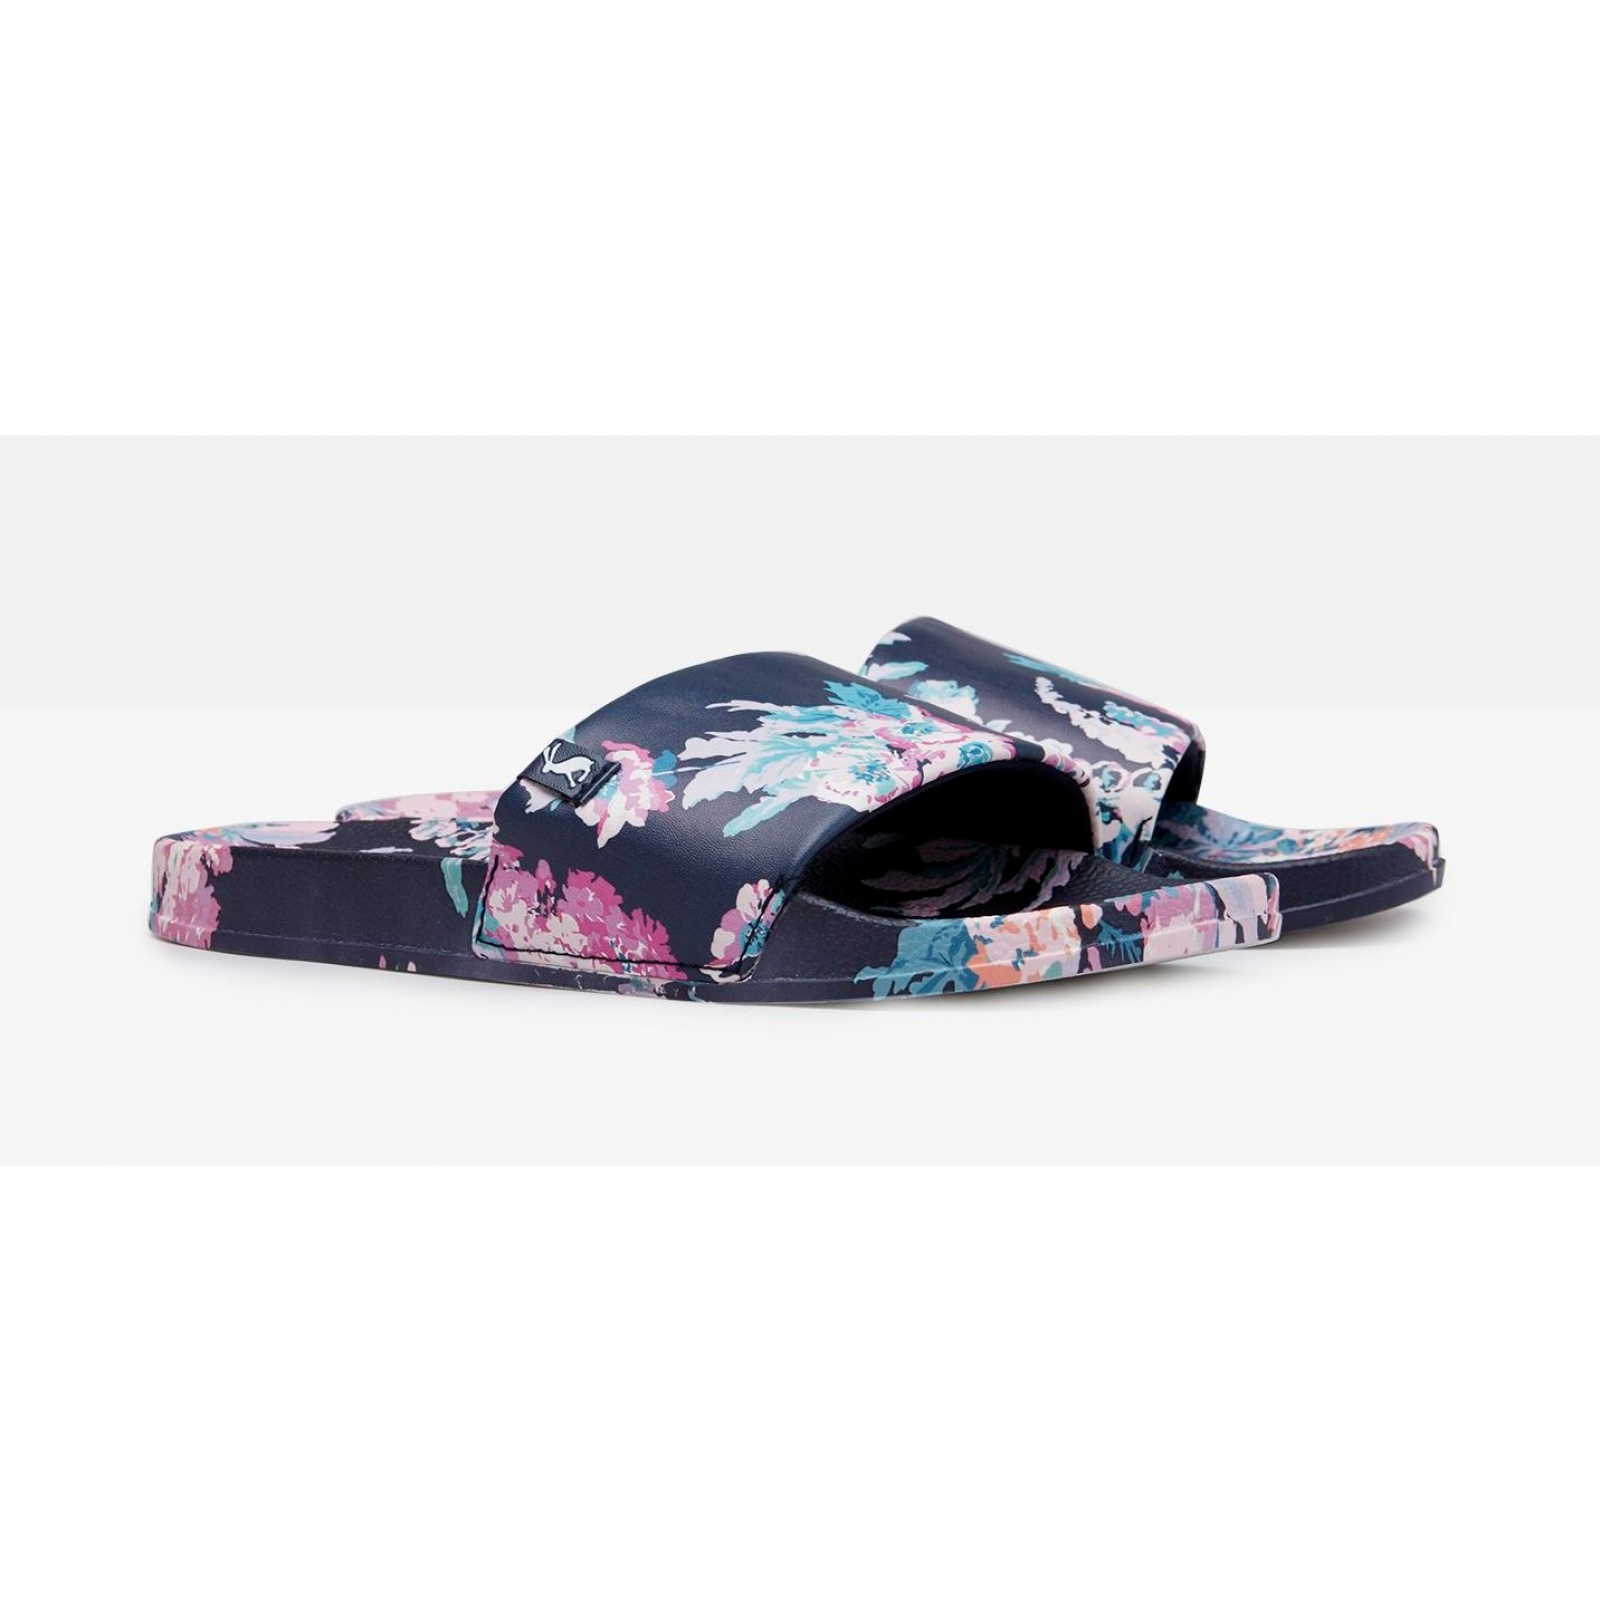 Joules-Poolside-PU-Sliders-Beach-Holiday-Shoes-SS19 miniature 11